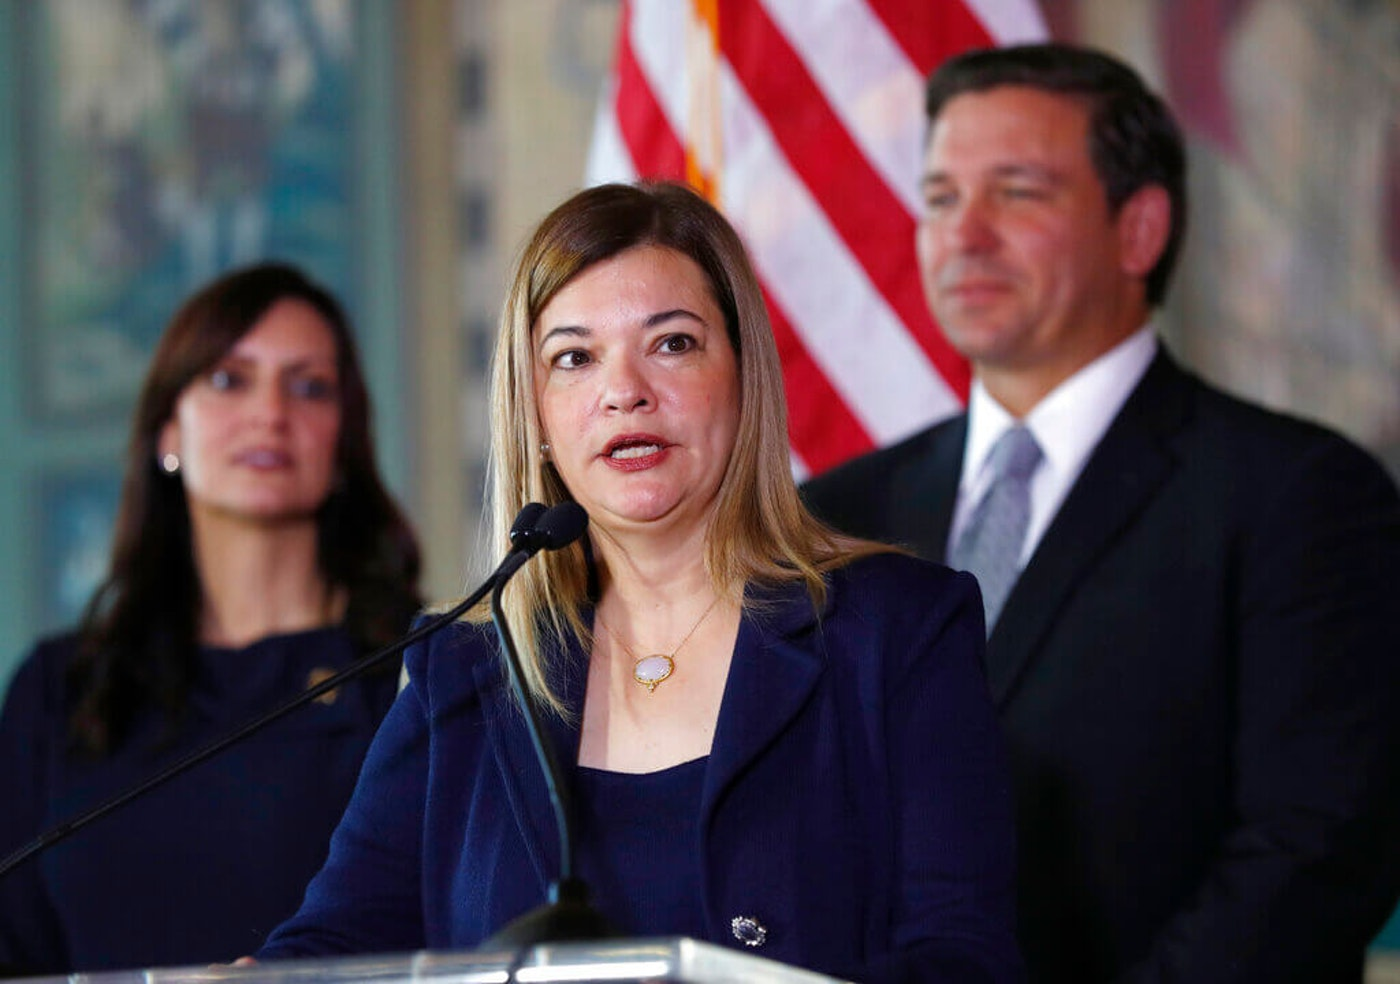 Judge Barbara Lagoa with Gov. Ron DeSantis after he picked her for for the Florida Supreme Court in 2019. Lagoa is considered one of Trump's top picks for the Supreme Court. (AP Photo/Wilfredo Lee)